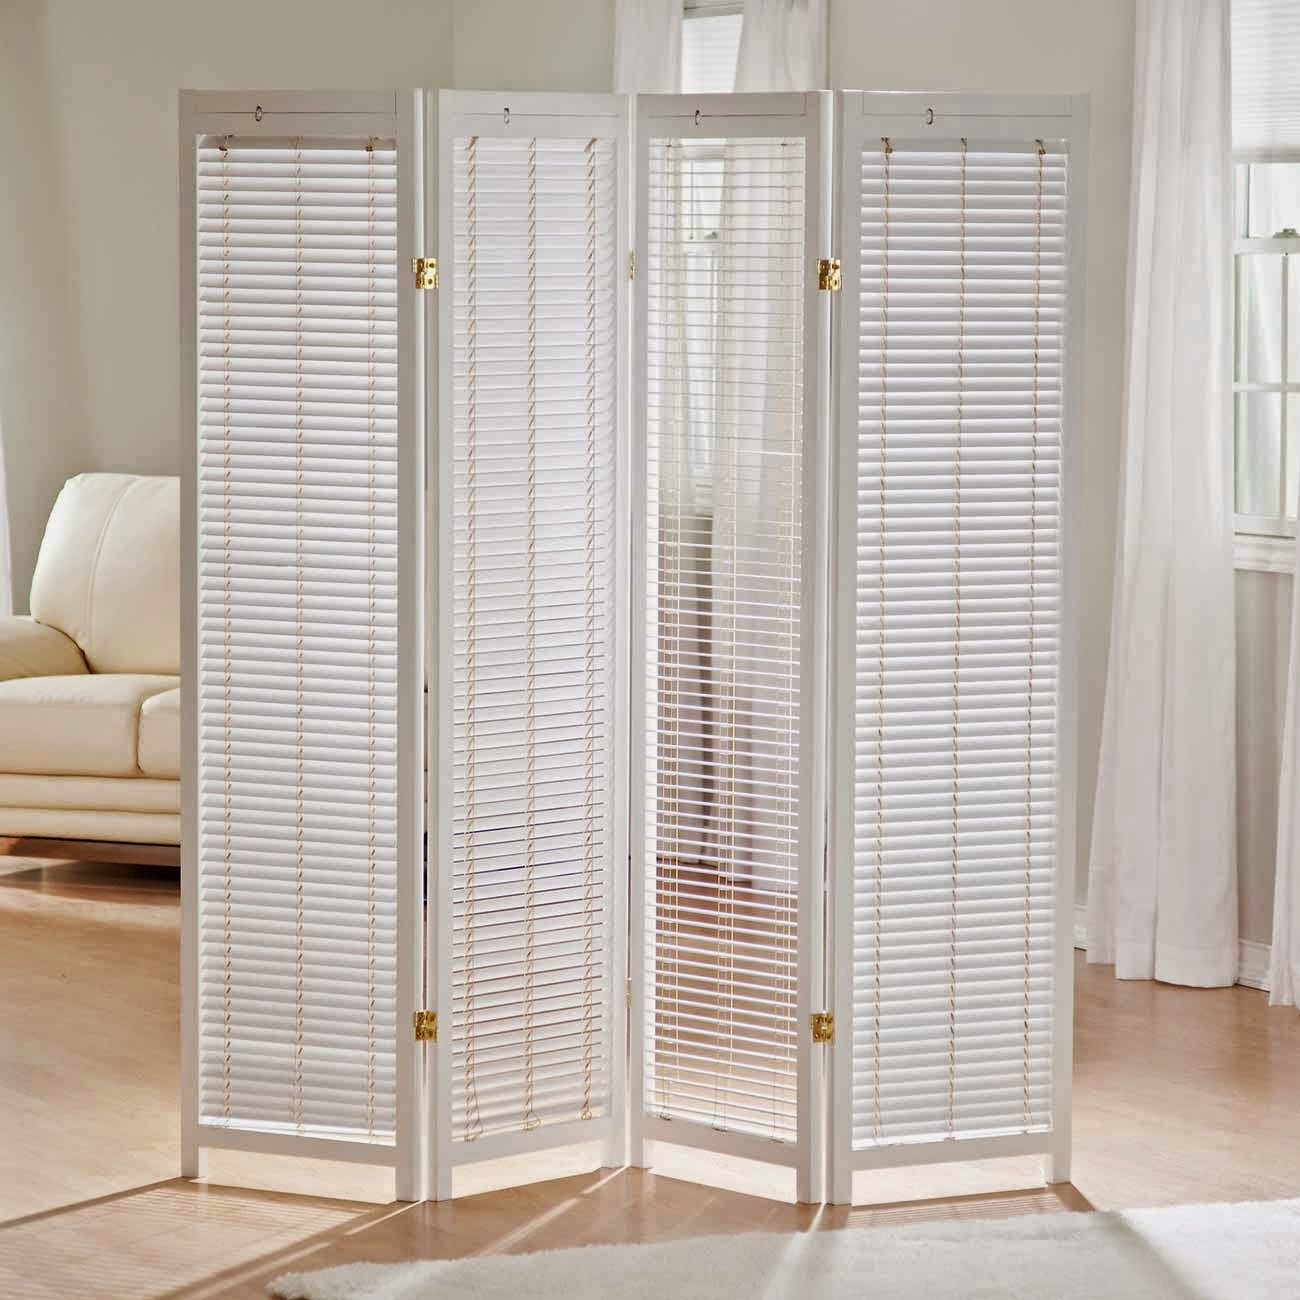 Accordion Room Dividers White Panels